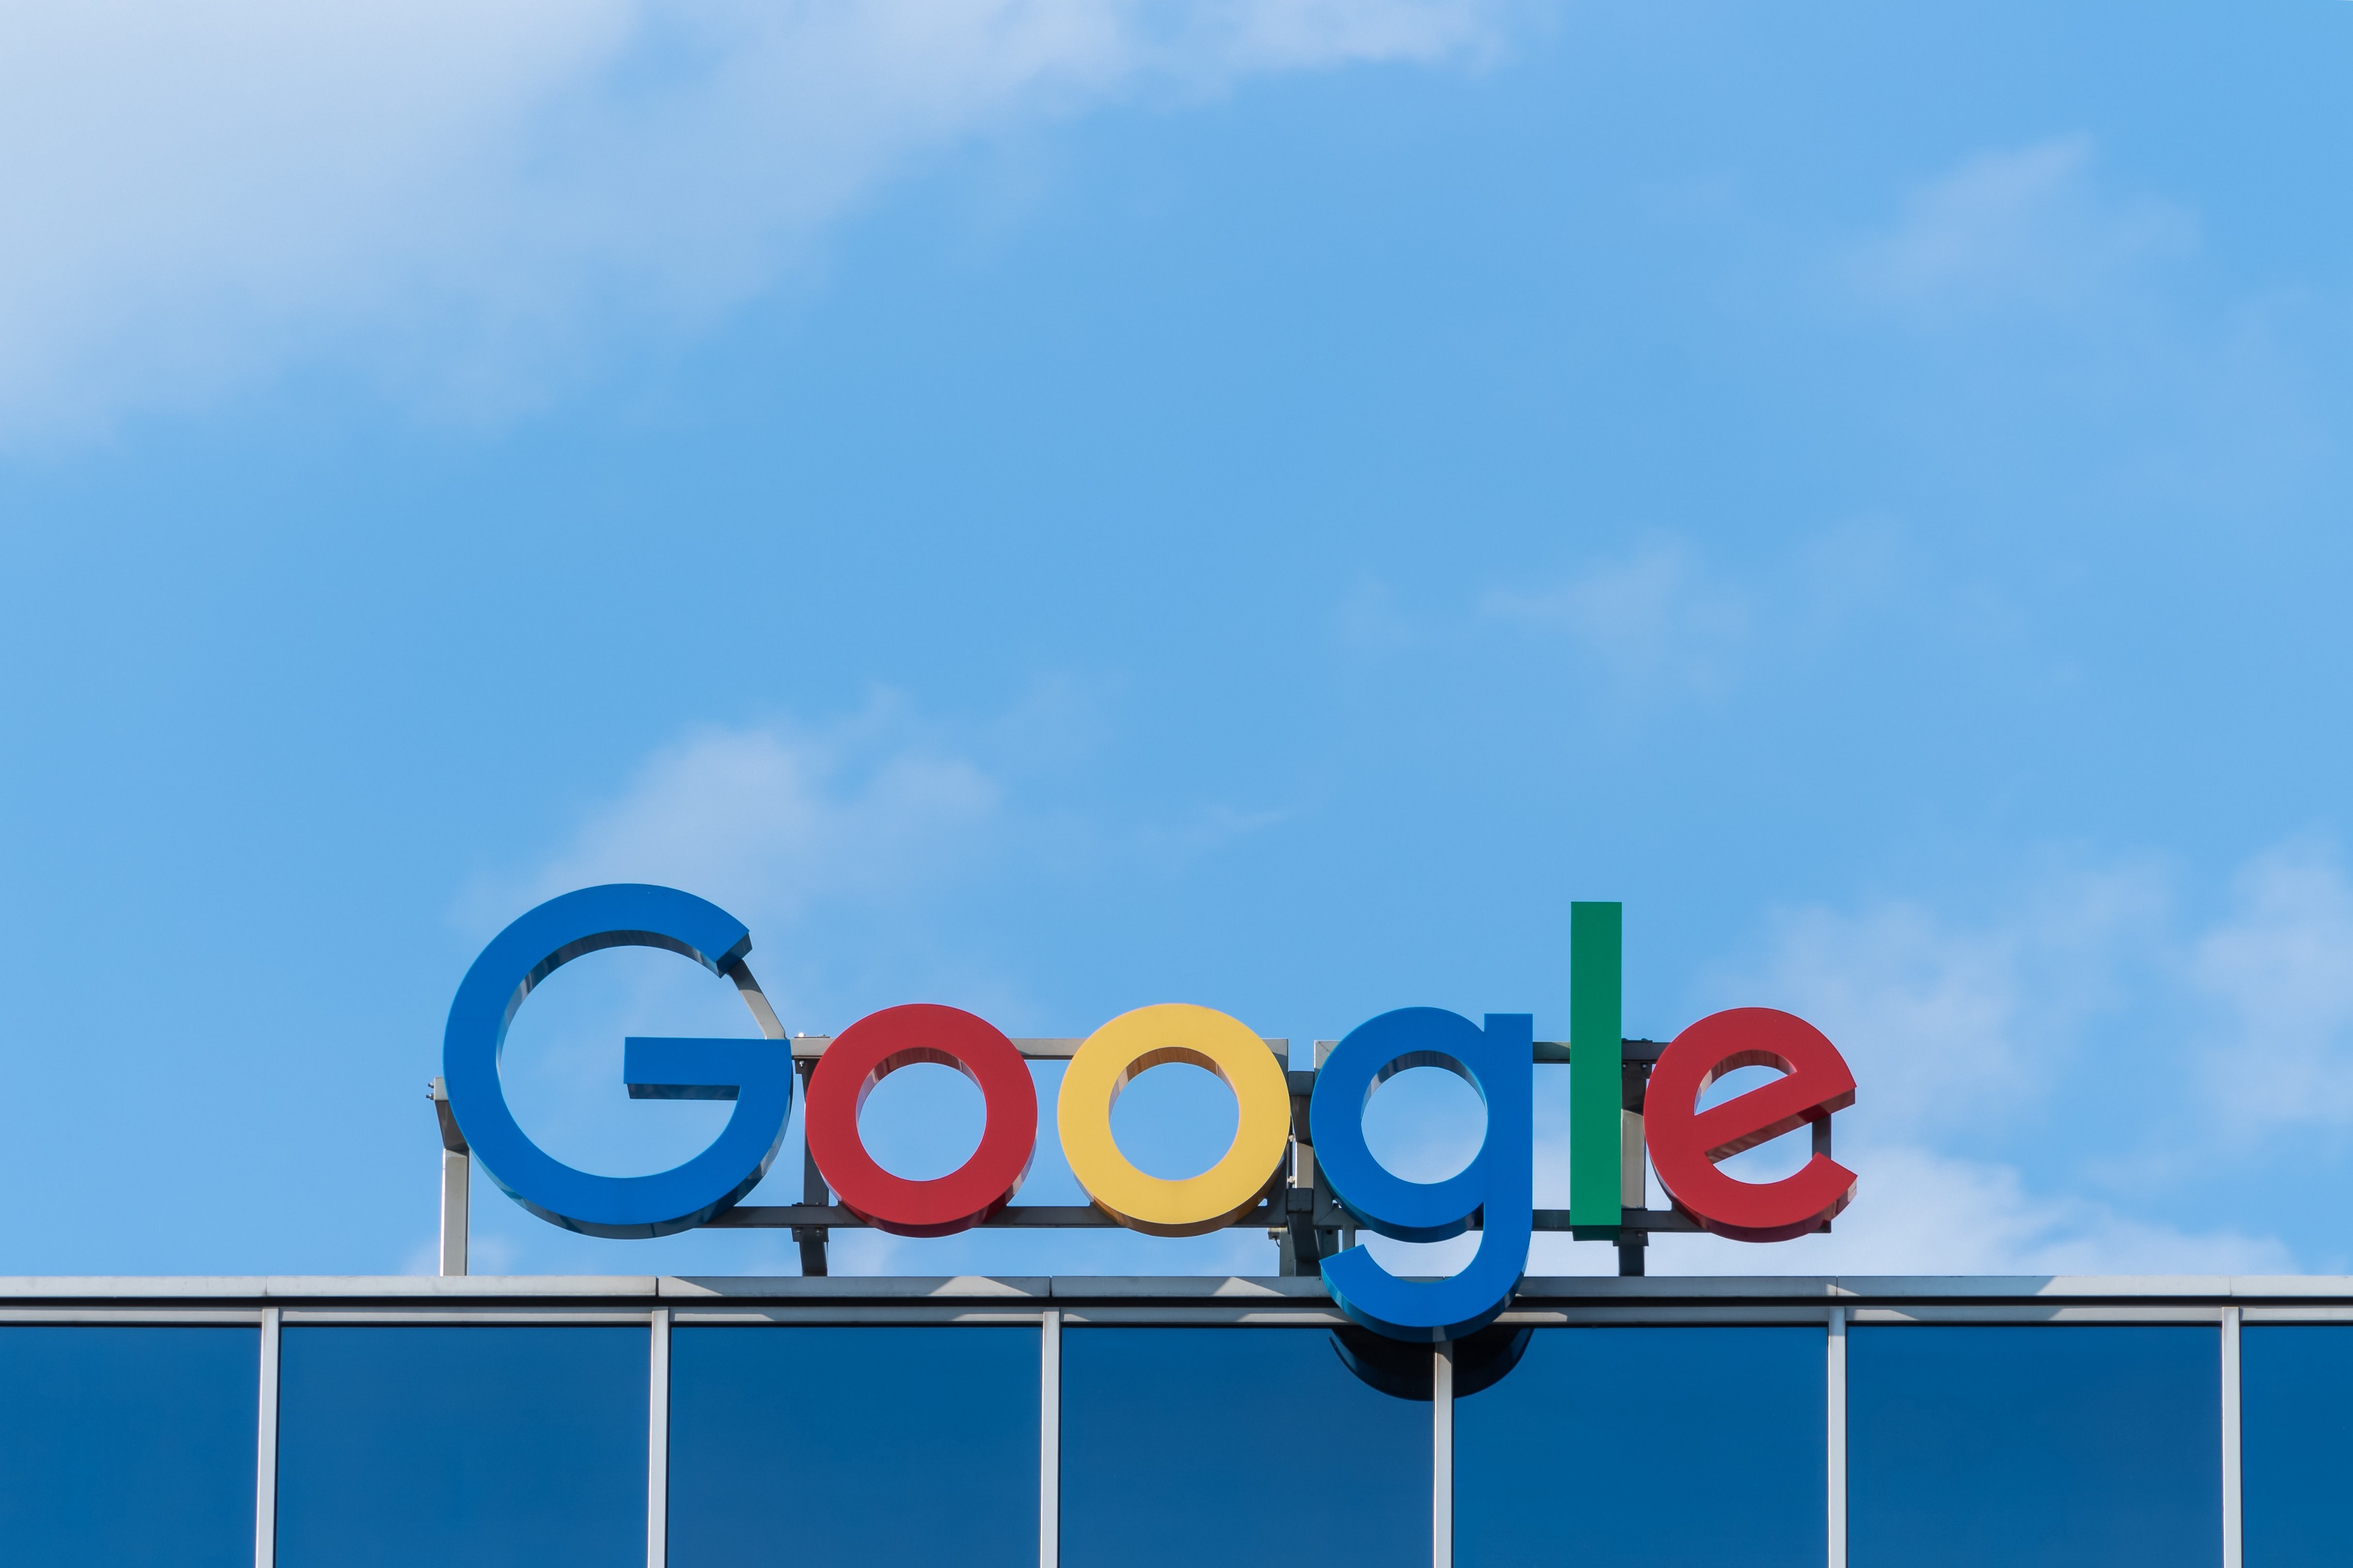 Google sign on building roof